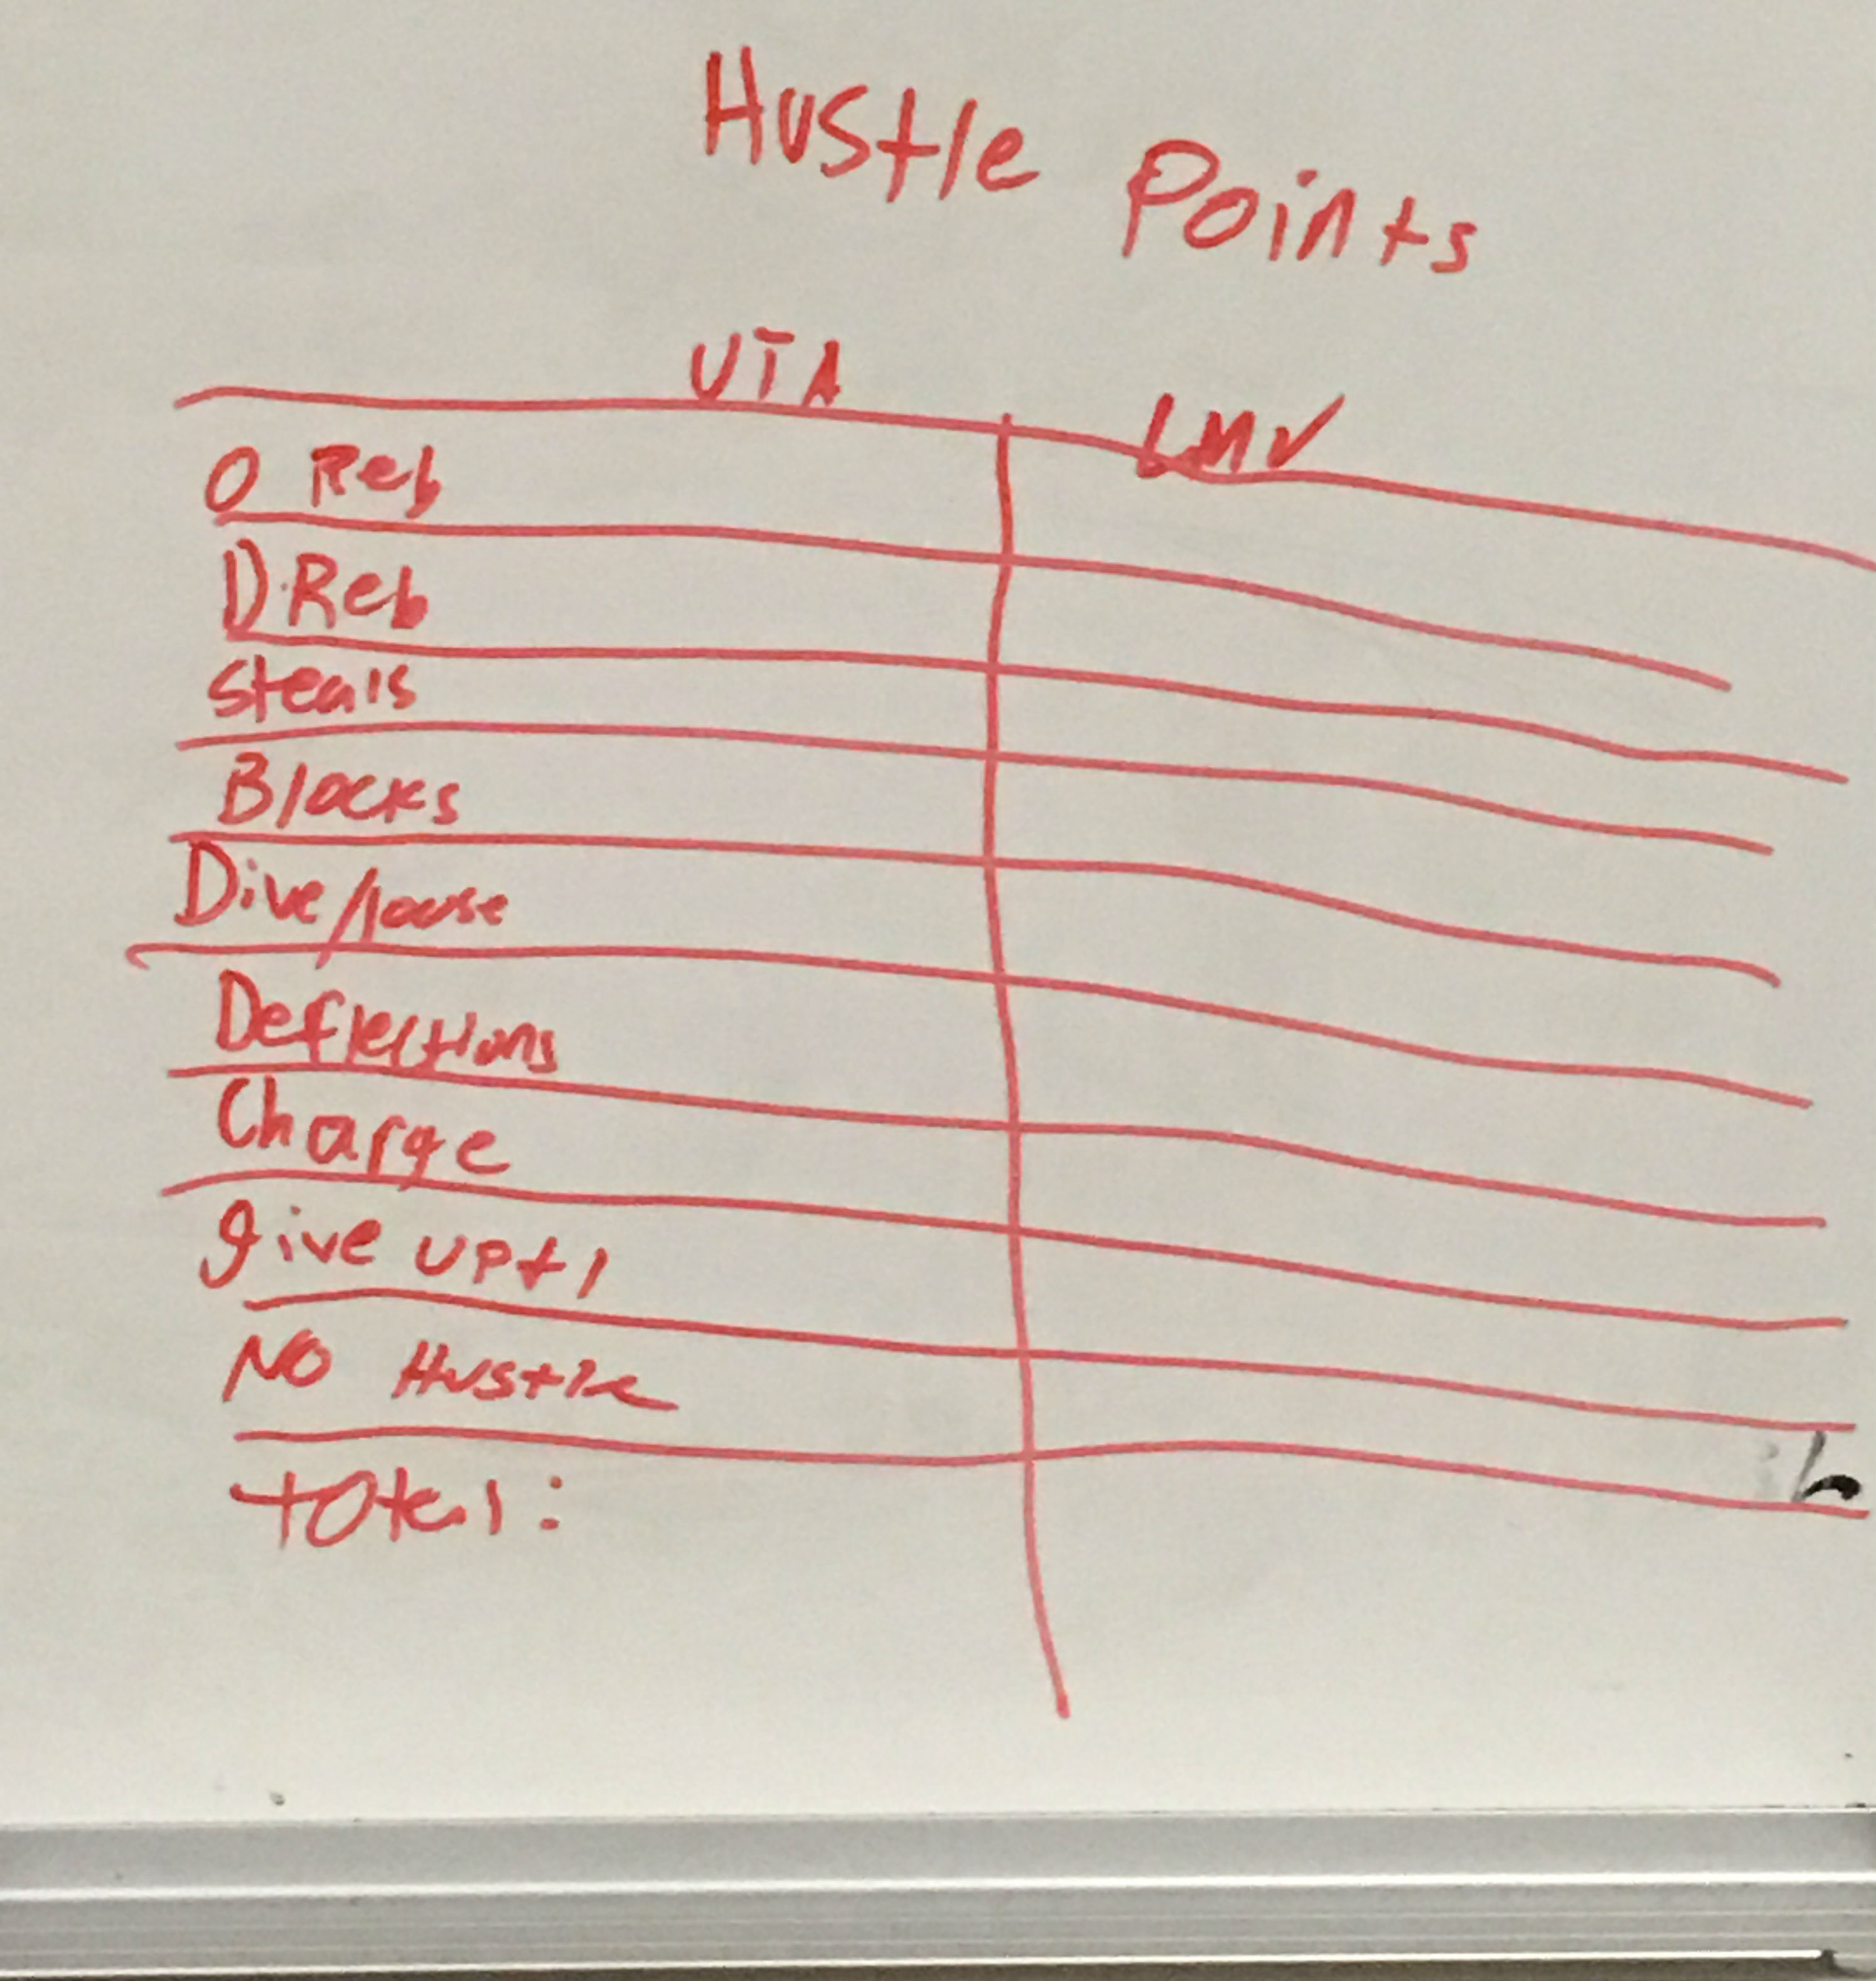 ut-arlington-hustle-points-board.jpg